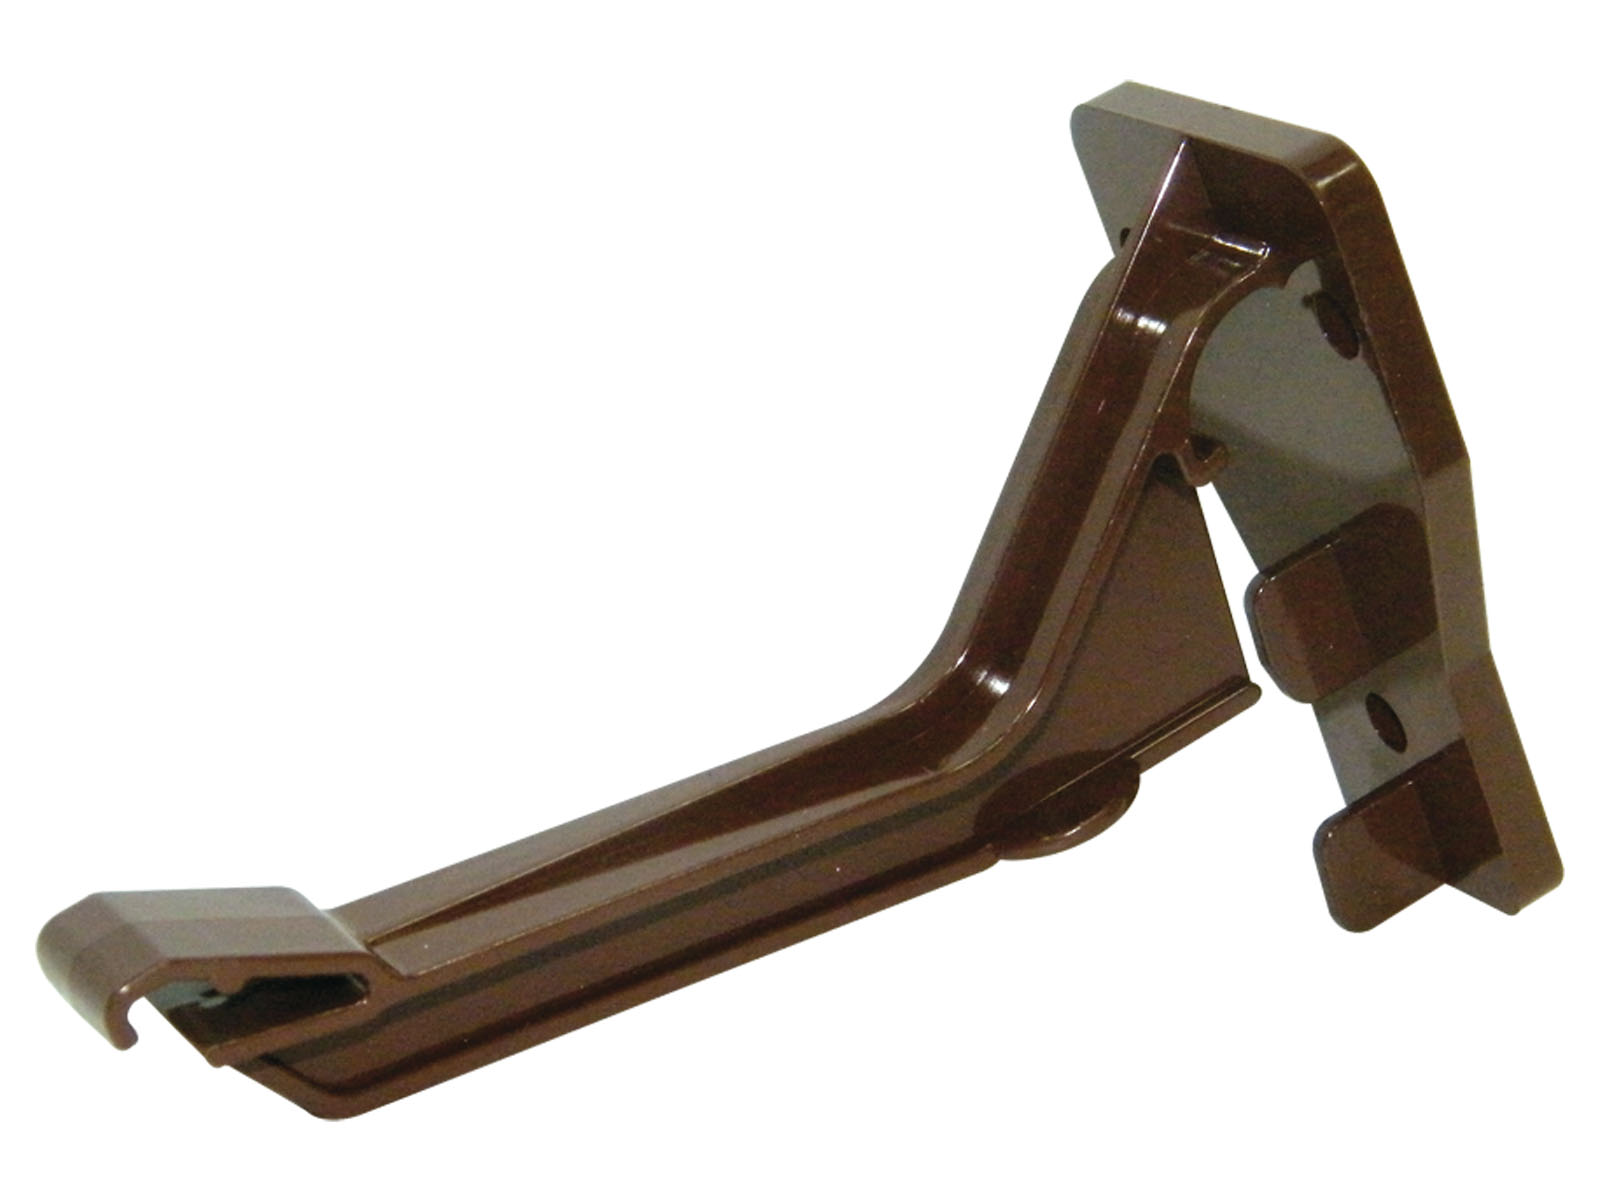 FLOPLAST NIAGARA - RKN2 TOP HUNG FASCIA BRACKET - BROWN